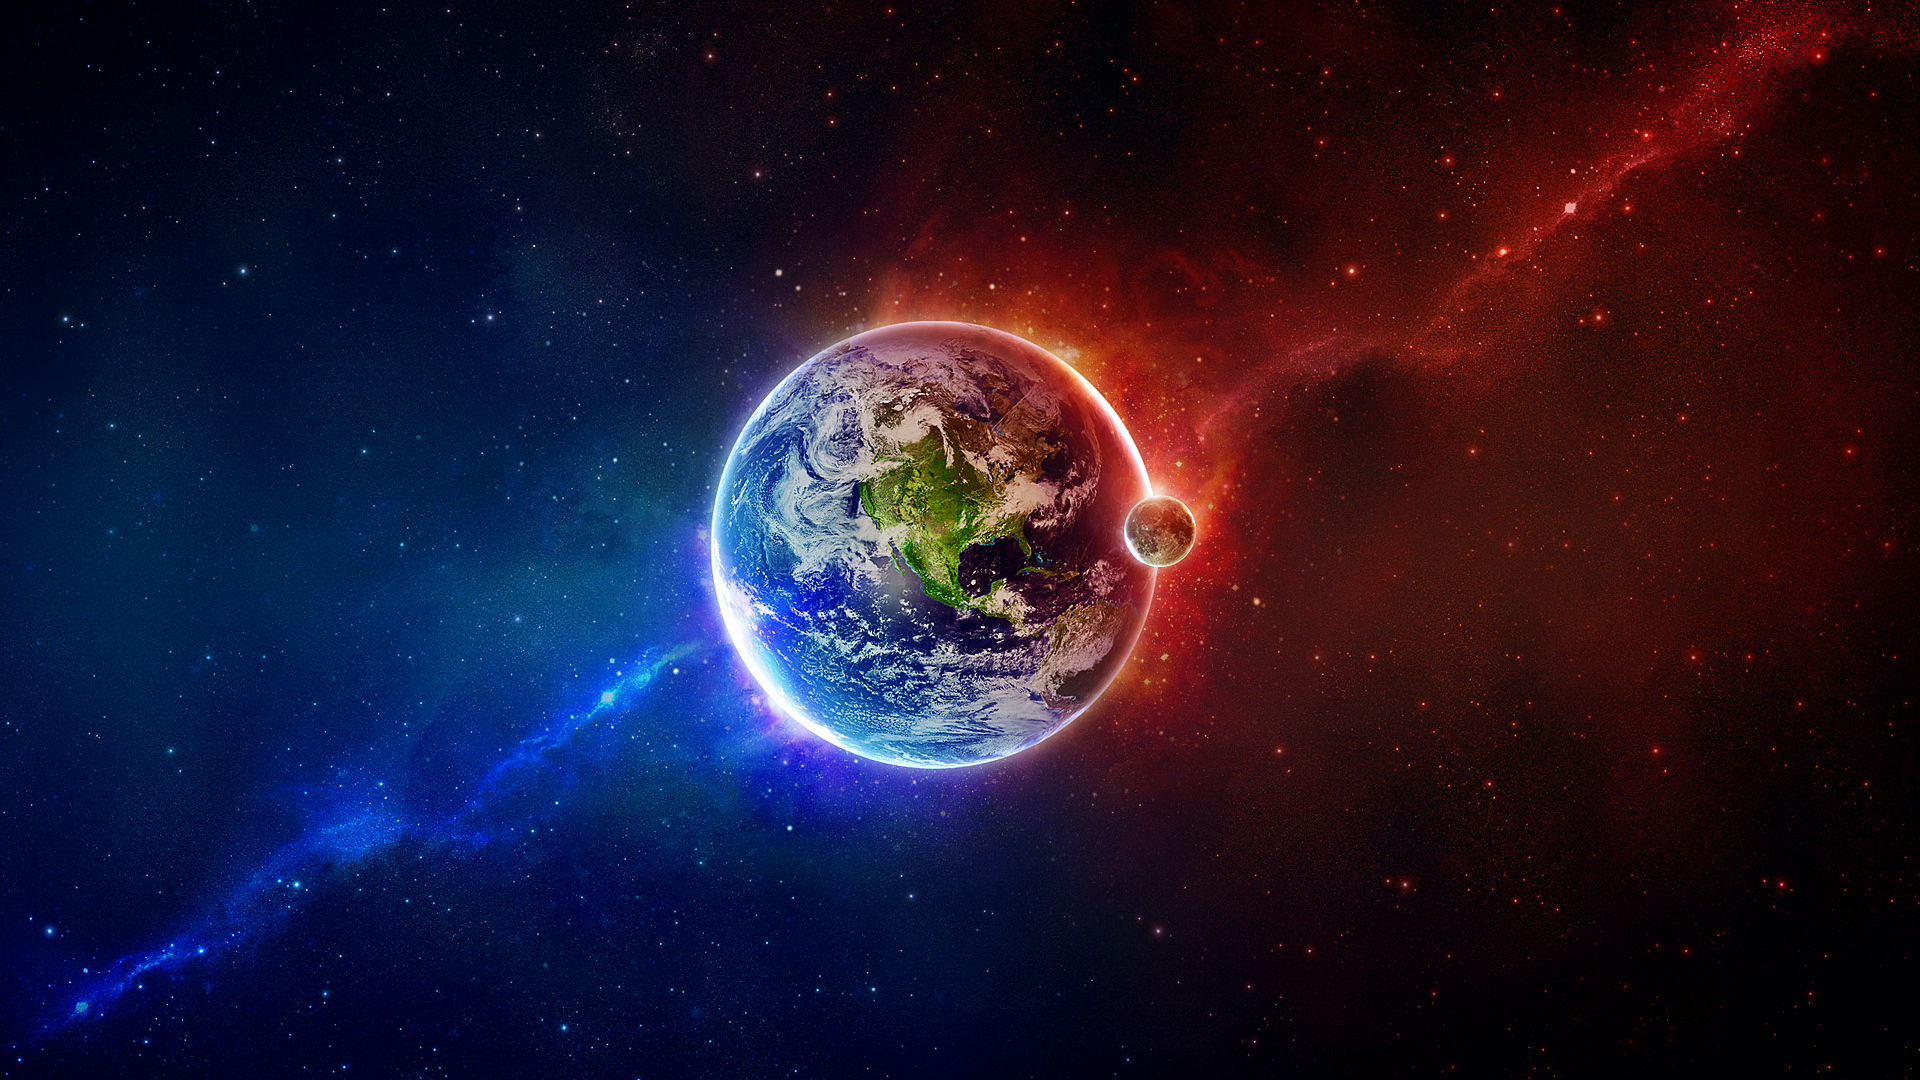 file name earth 3d 1920 1080 wallpaper hd posted category 3d abstract 1920x1080